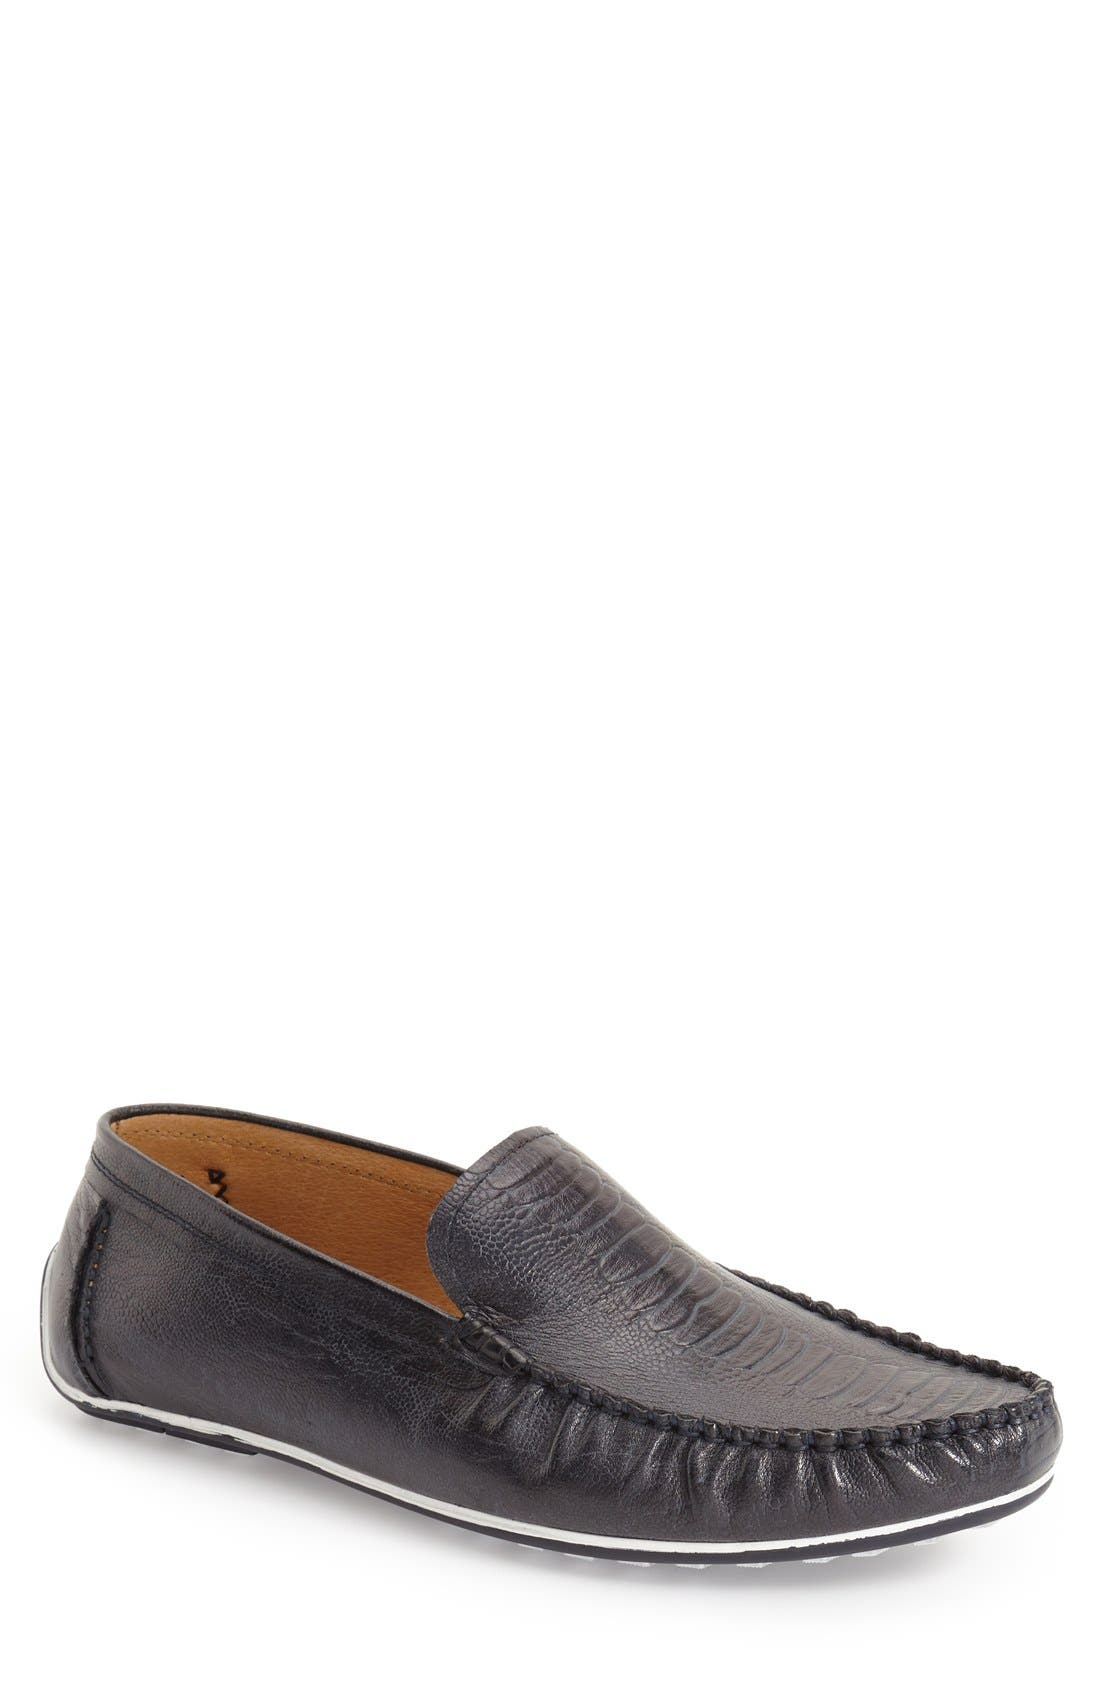 Alternate Image 1 Selected - Zanzara 'Rembrandt' Driving Loafer (Men)